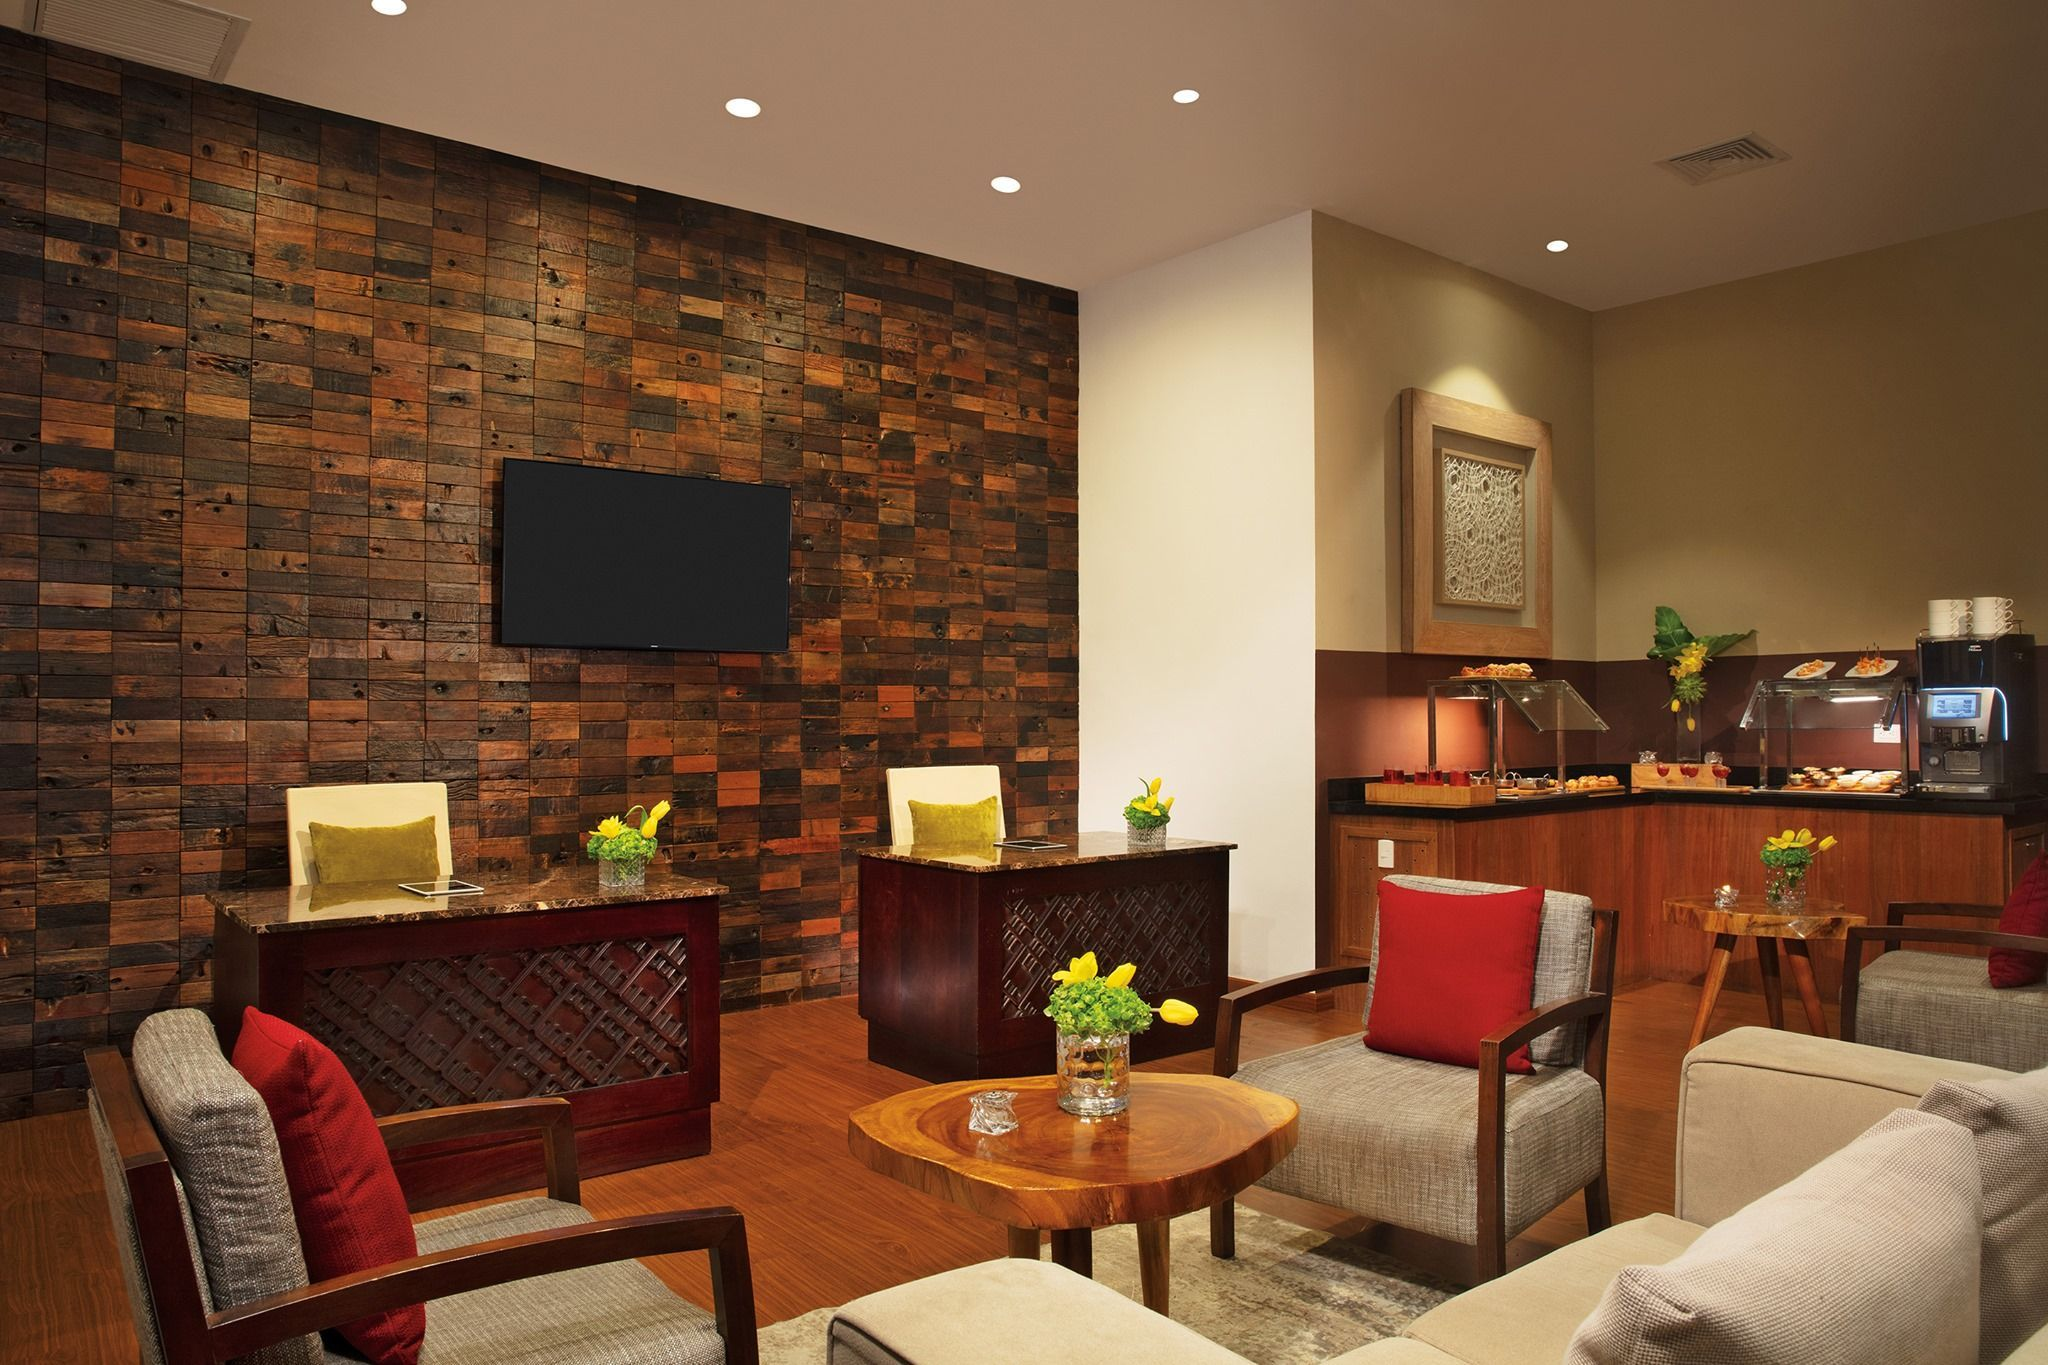 Upgrade To The Preferred Club For Access To Our Private Lounge In 2020 Private Lounge All Inclusive Beach Resorts Resort Spa